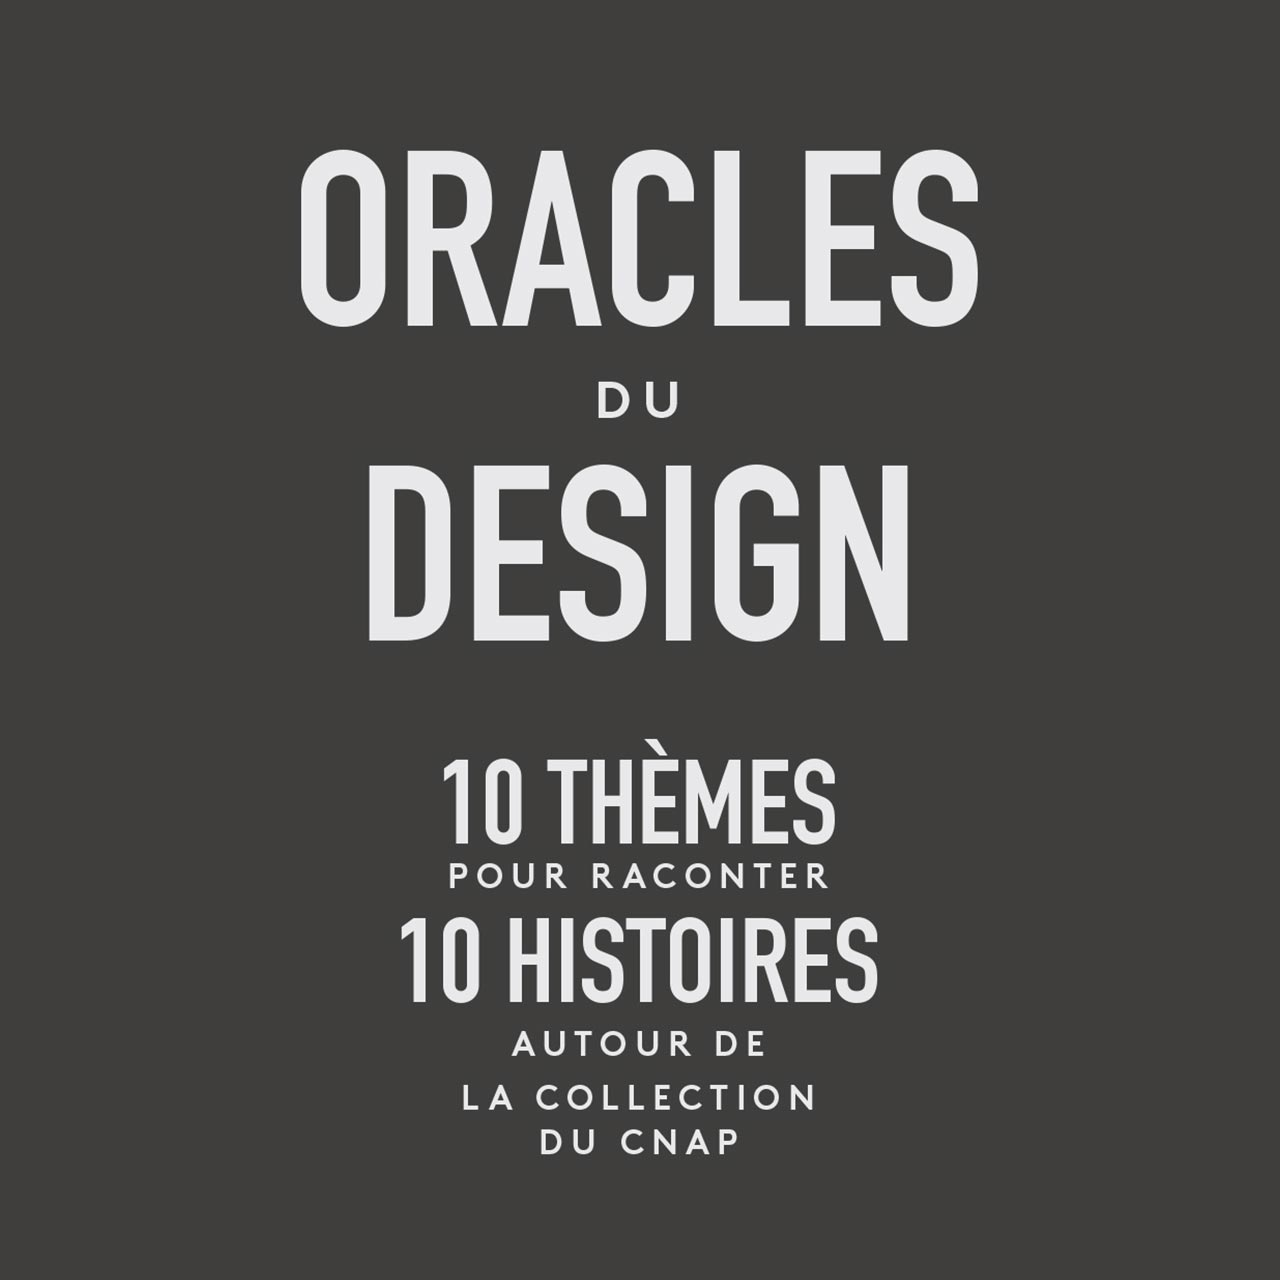 Oracle du Design, manifesto